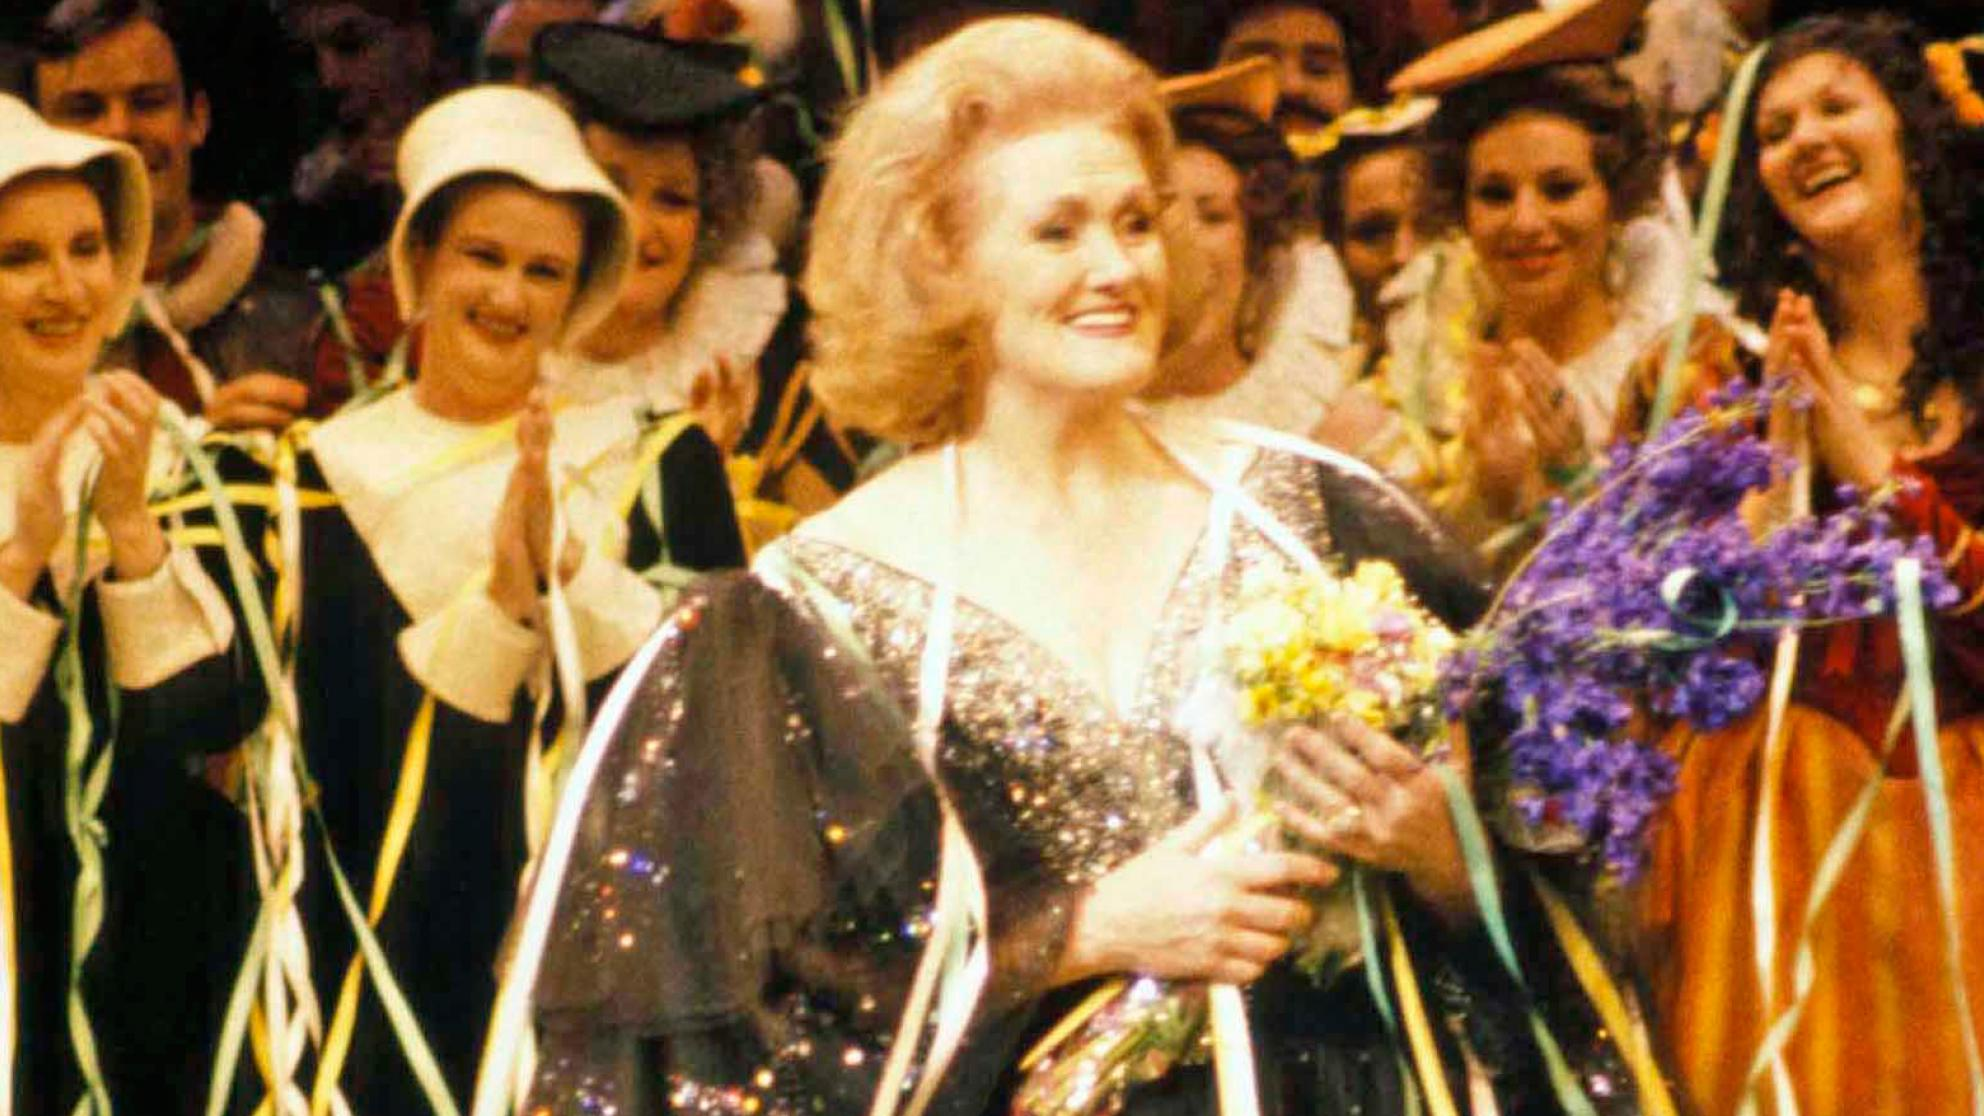 Dame Joan Sutherland on stage holding flowers with the cast applauding her.